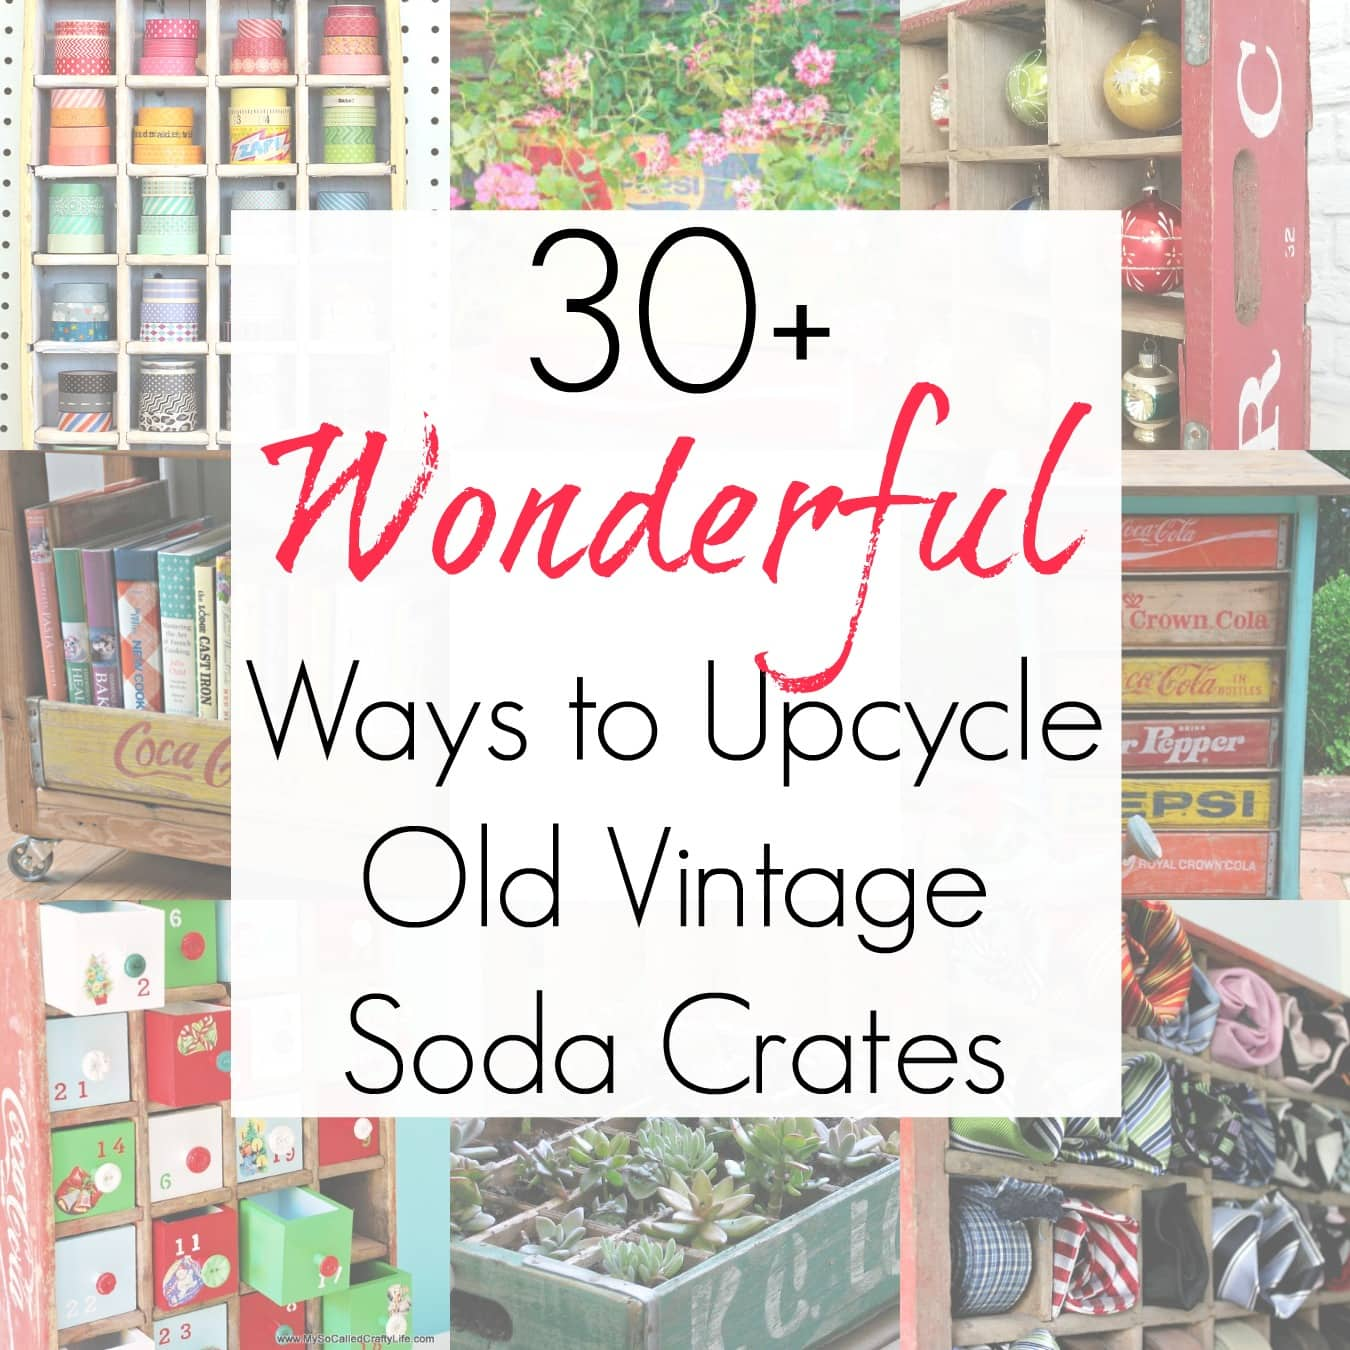 30+ Upcycling and Repurposing Ideas for Soda Crates